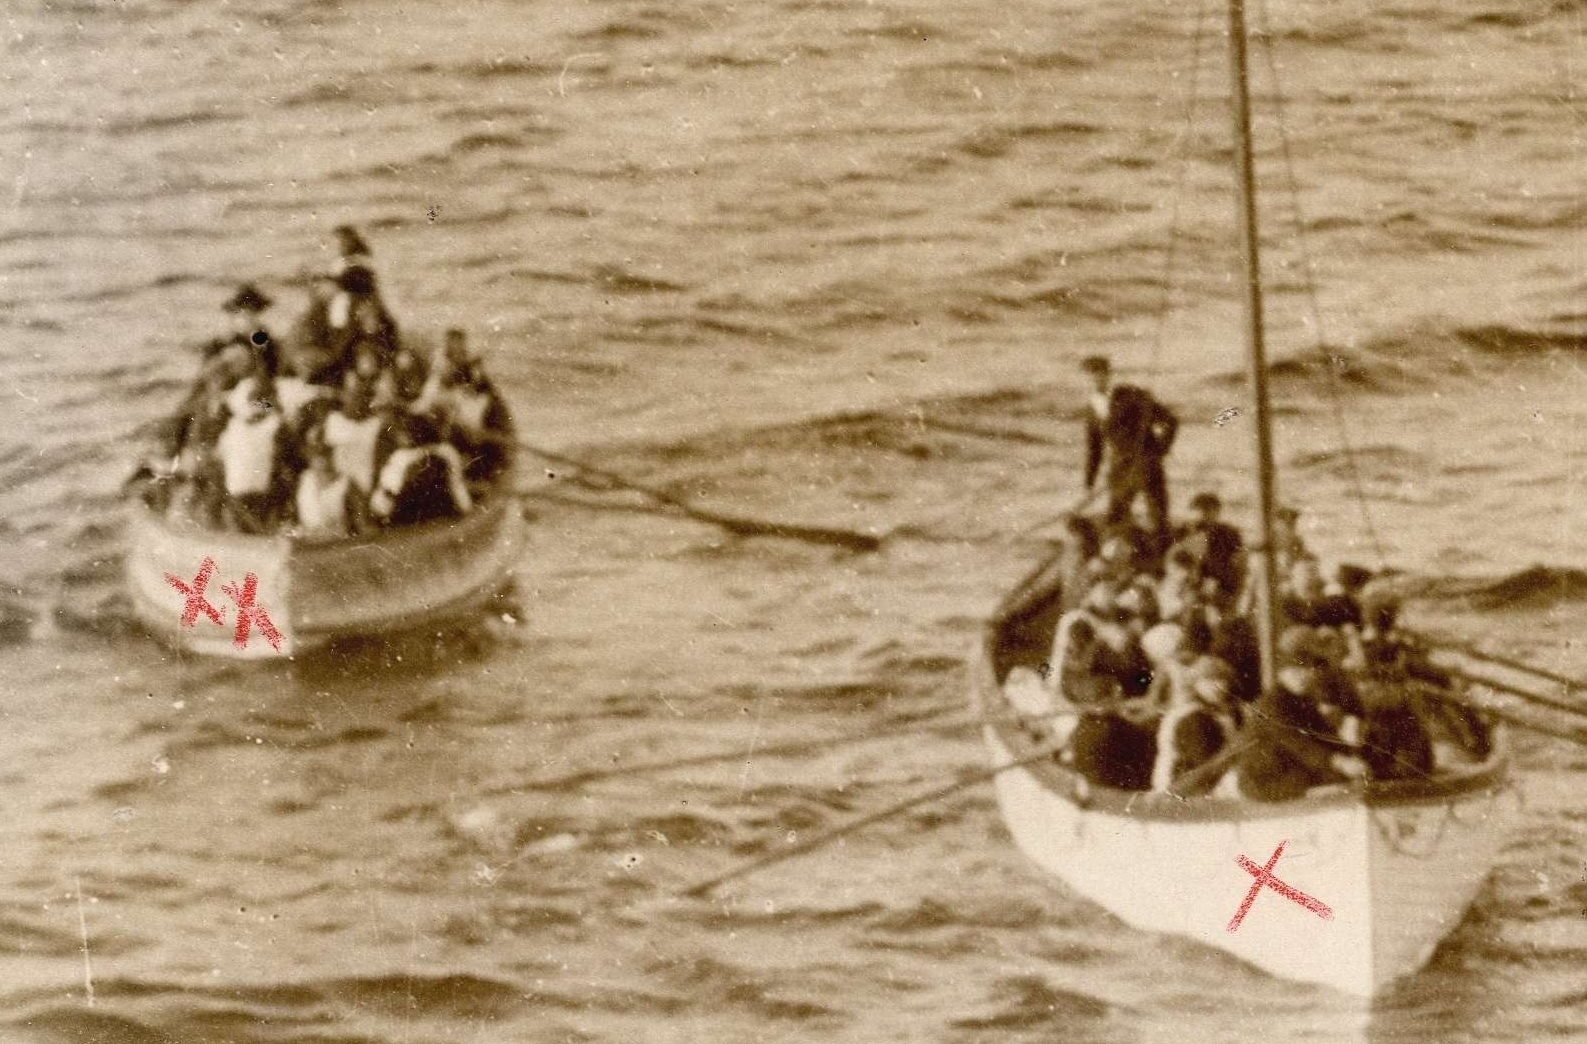 Photograph of Two Lifeboats Carrying Titanic Survivors